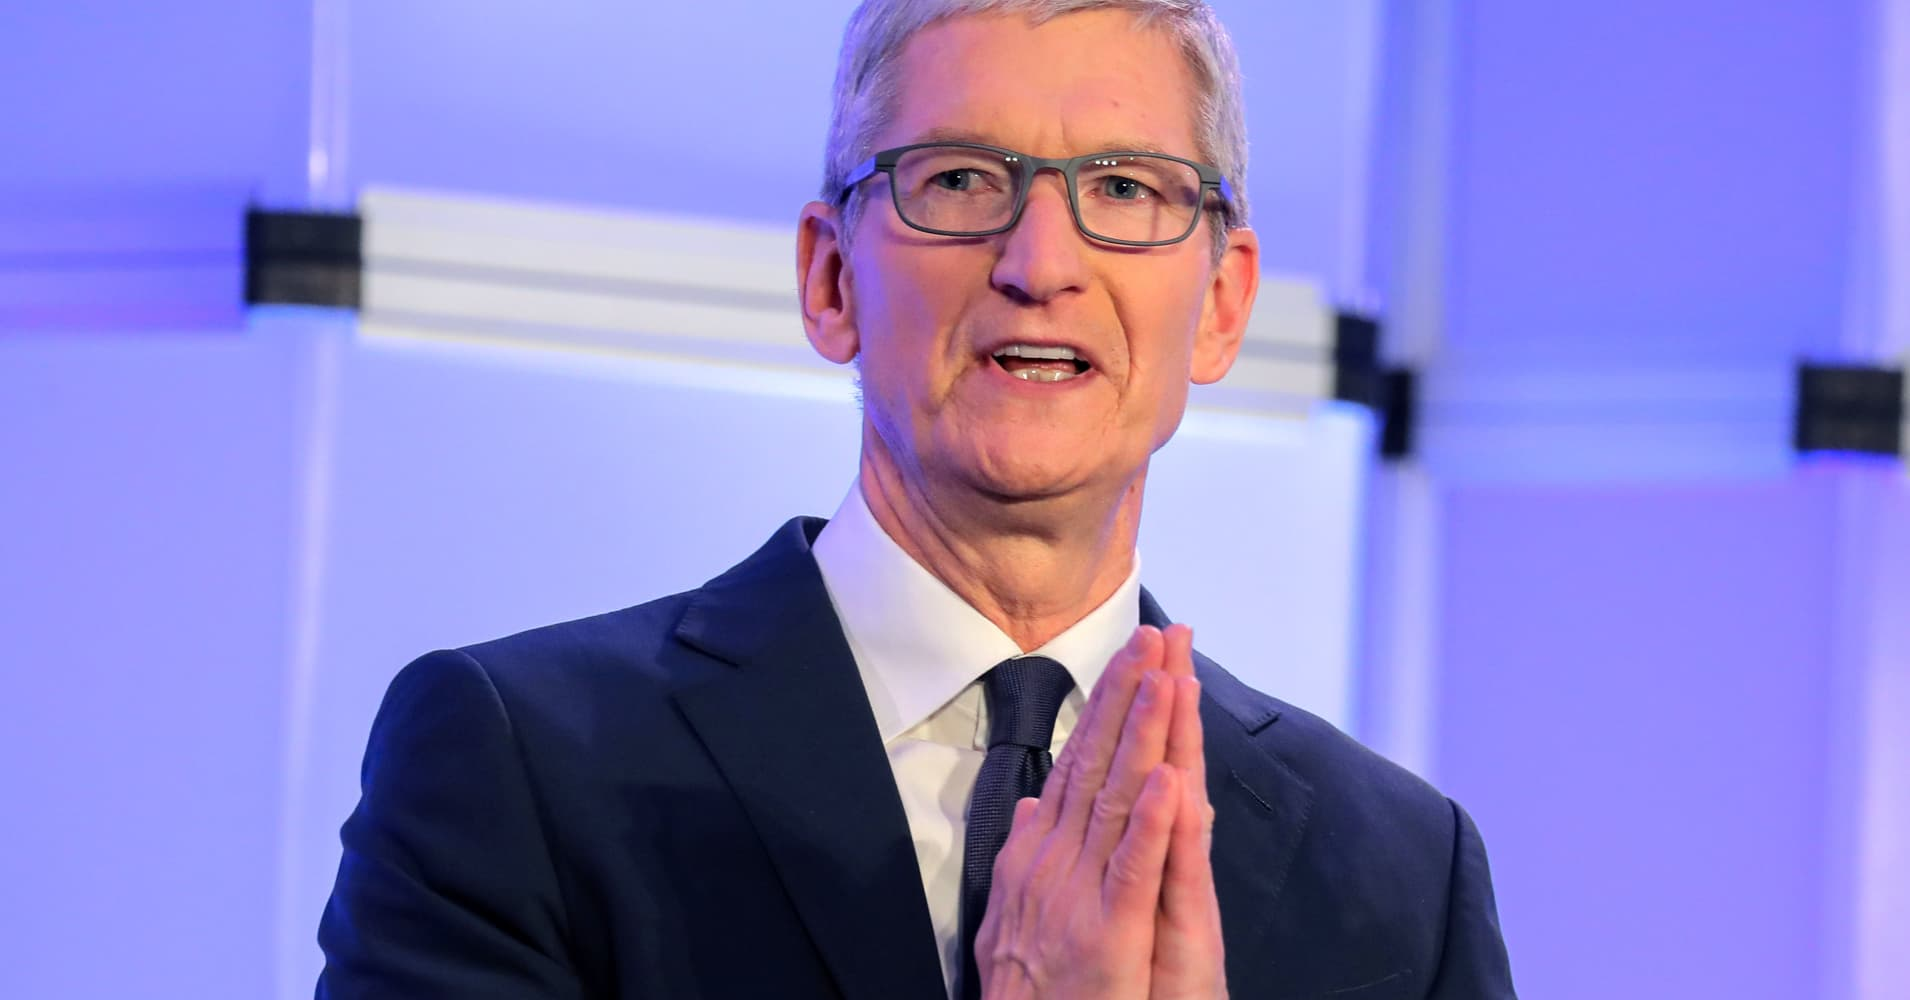 Tim Cook, CEO, Apple